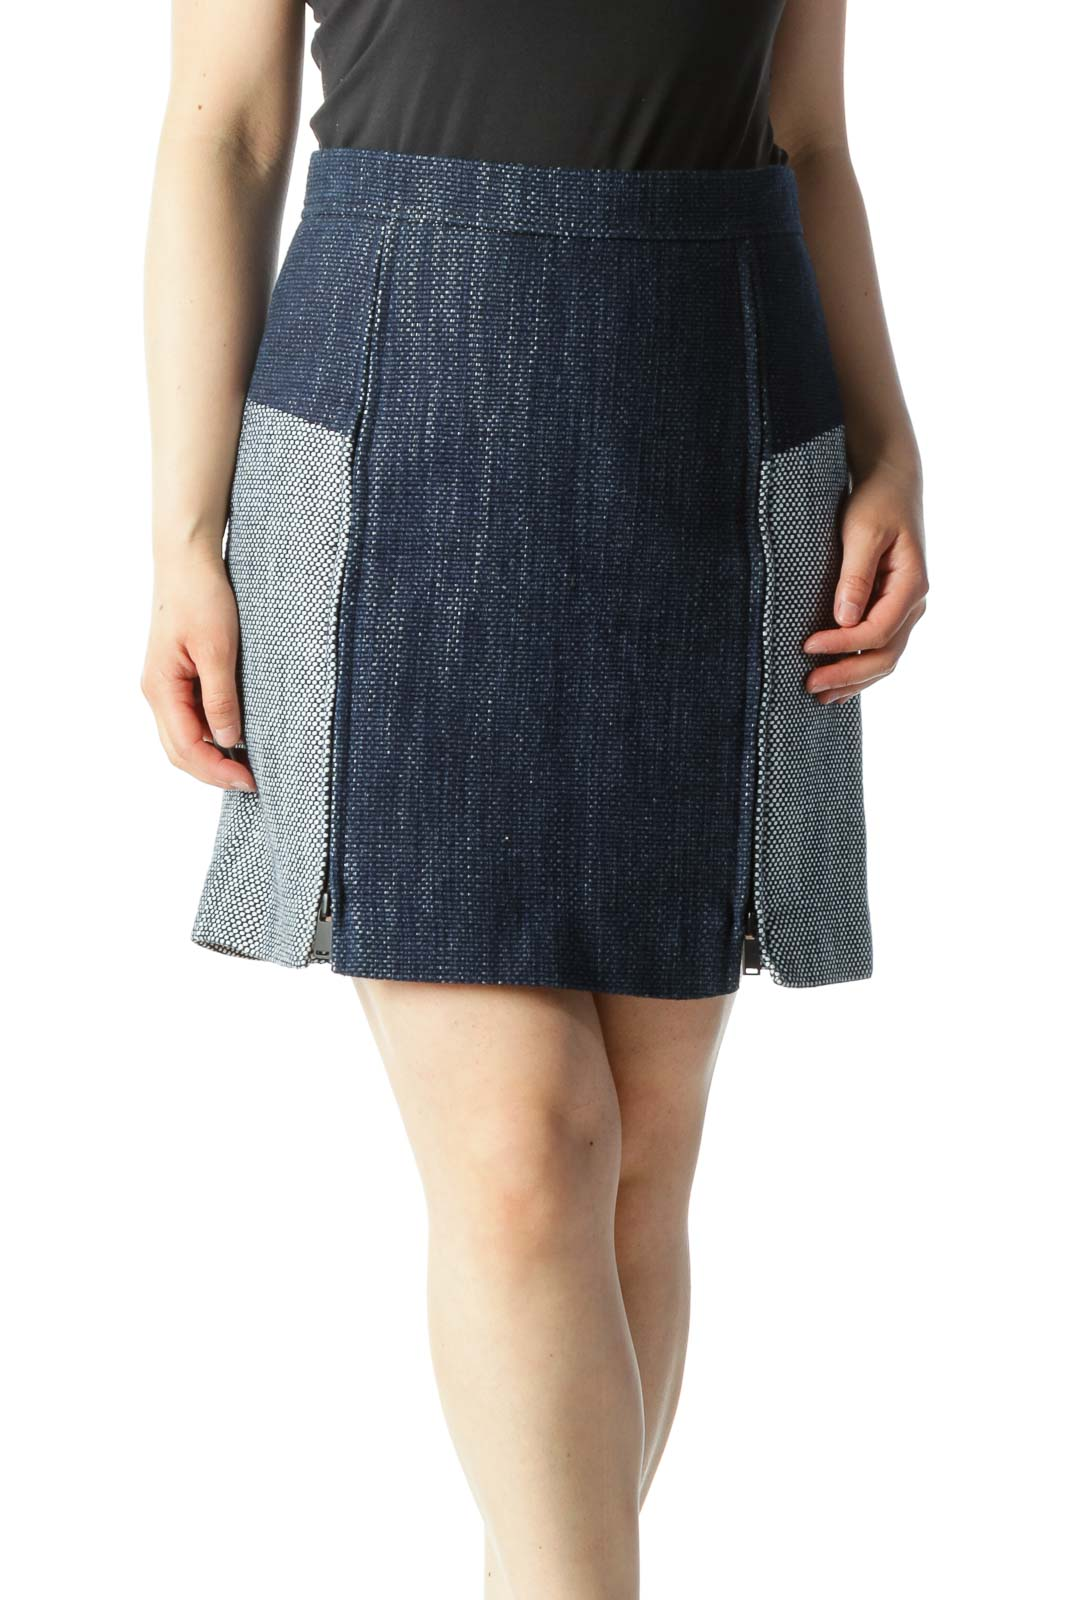 Navy & White Zipper-Opening Tweed Color-Blocked Pencil Skirt Front